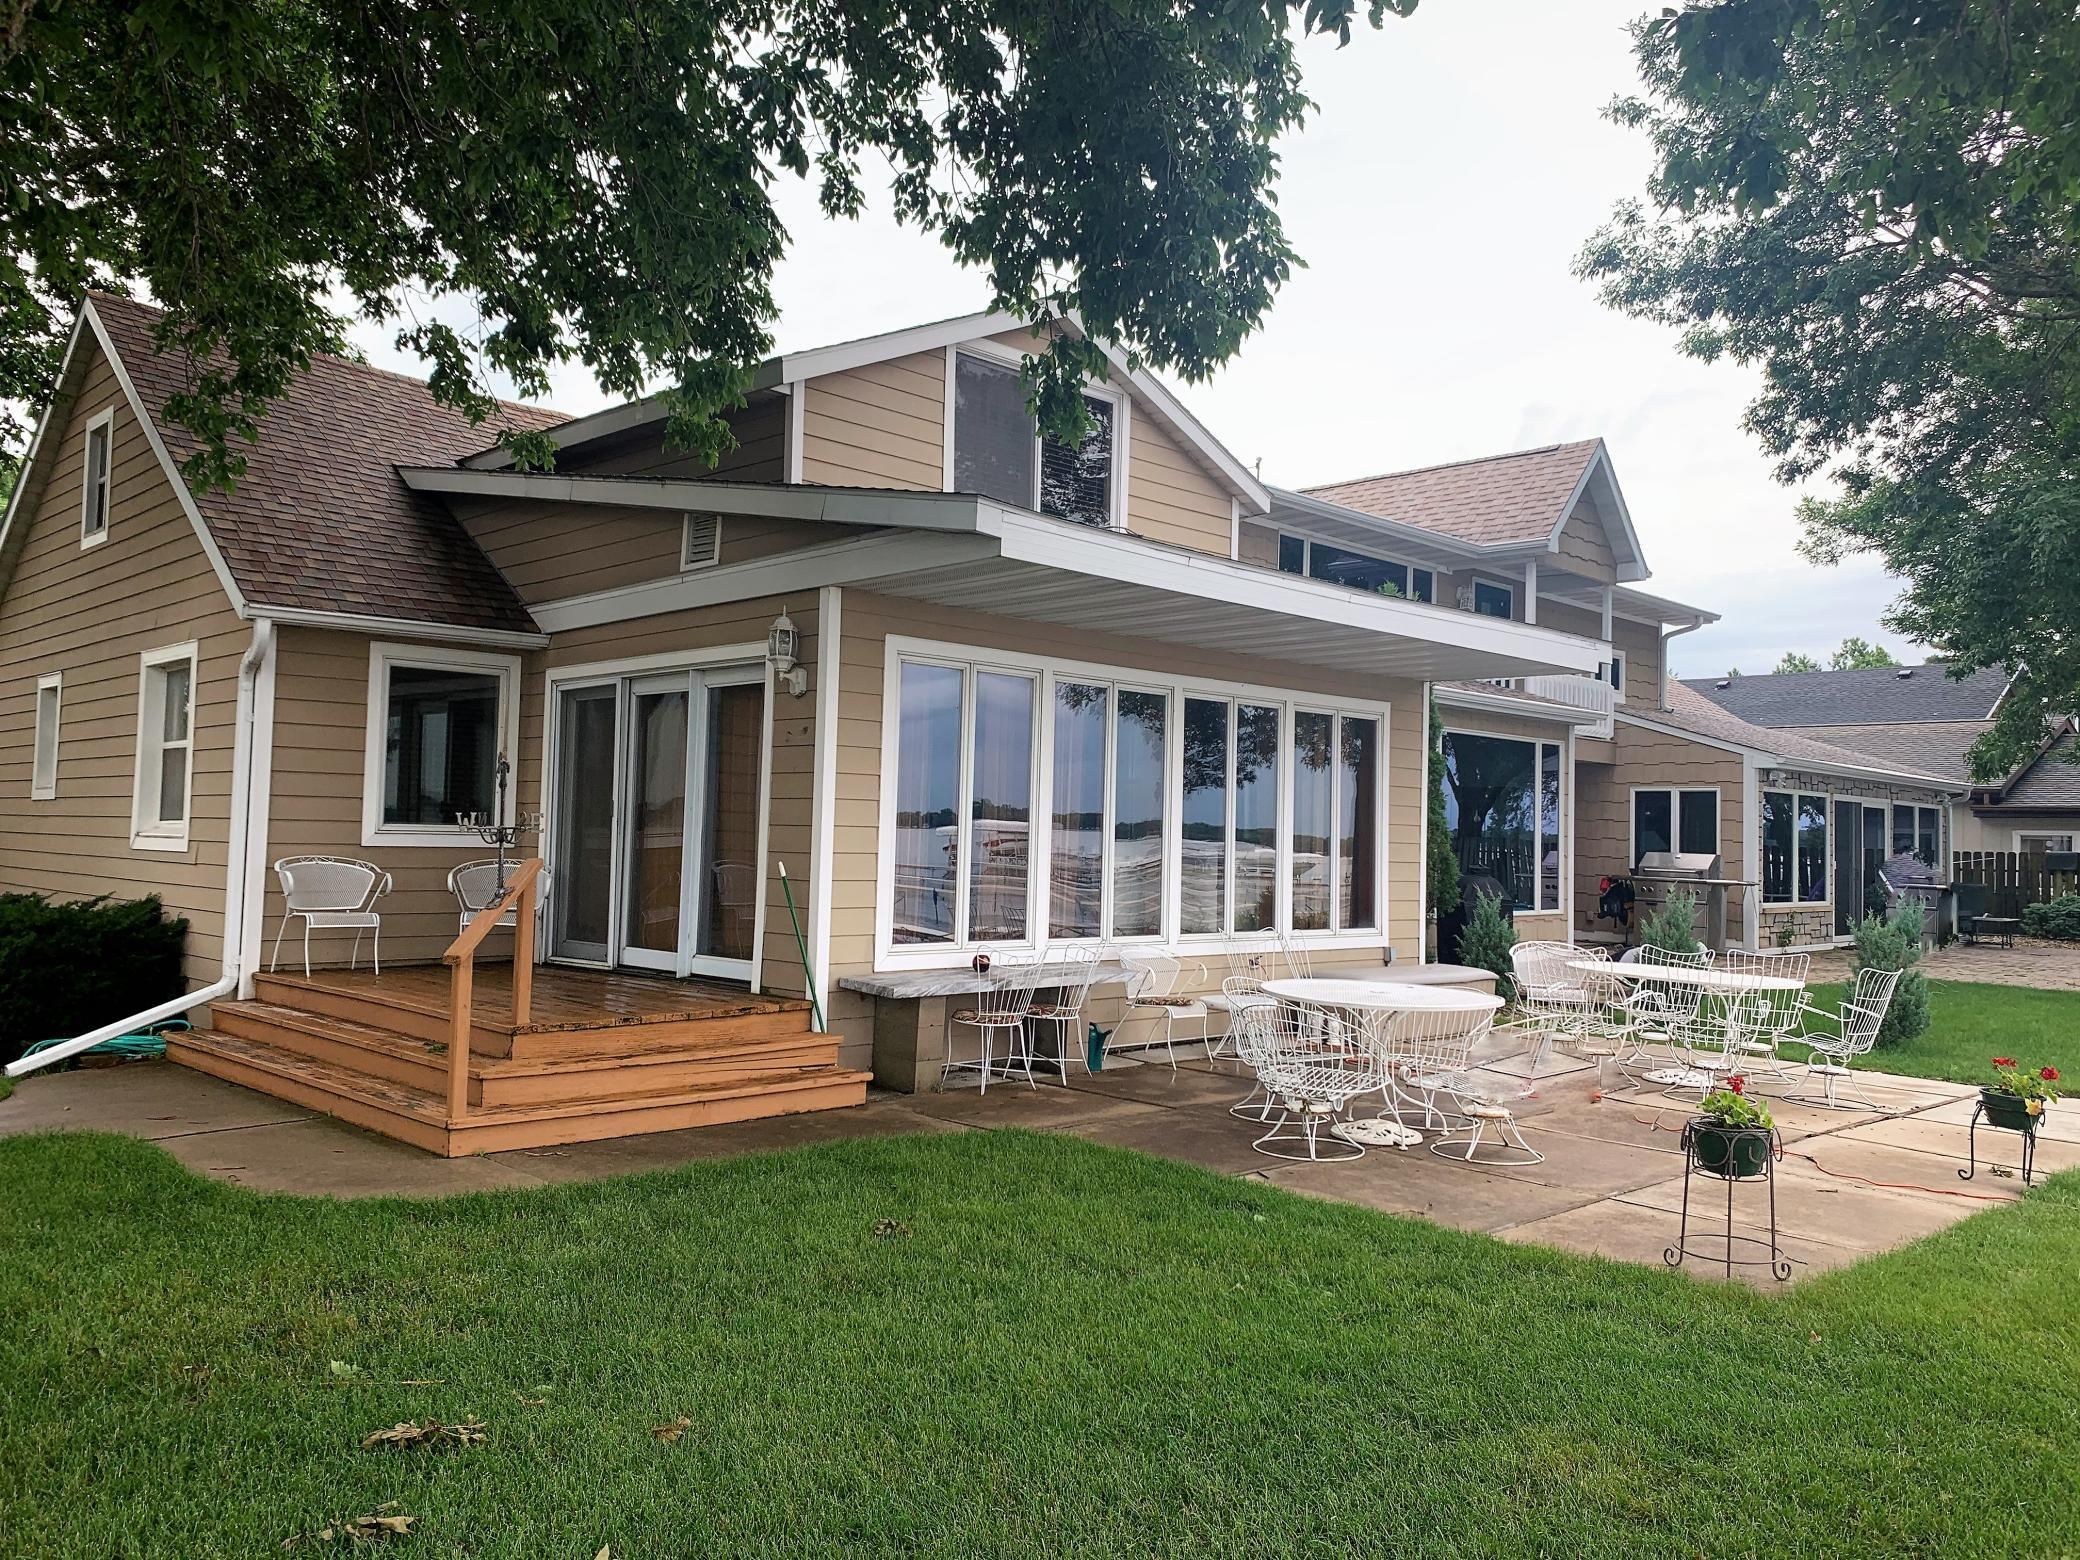 "Lakefront home with wonderful southern exposure, no steps to the lake and close to downtown. Casual comfort with 2 bedrooms and bath on main level and Master bedroom with bath upstairs. Spacious living room area with room for table and chairs for playing cards,puzzles, etc. on rainy days and still have view of lake. Formal dining room with plenty of space for entertaining meal time guests.Wonderful large patio, and green space on lakeside. The newer dock is included. Room for grill on the deck. Attached oversized single garage with pull down stairway with attic area above that could possibly be additional upstairs bonus room accessed from the 2nd floor if renovated. Enjoy this affordable lakefront home as a permanent residence or 2nd home get-a-way. Being sold in ""as is, where is""condition with no warranties or guarantees expressed or implied."